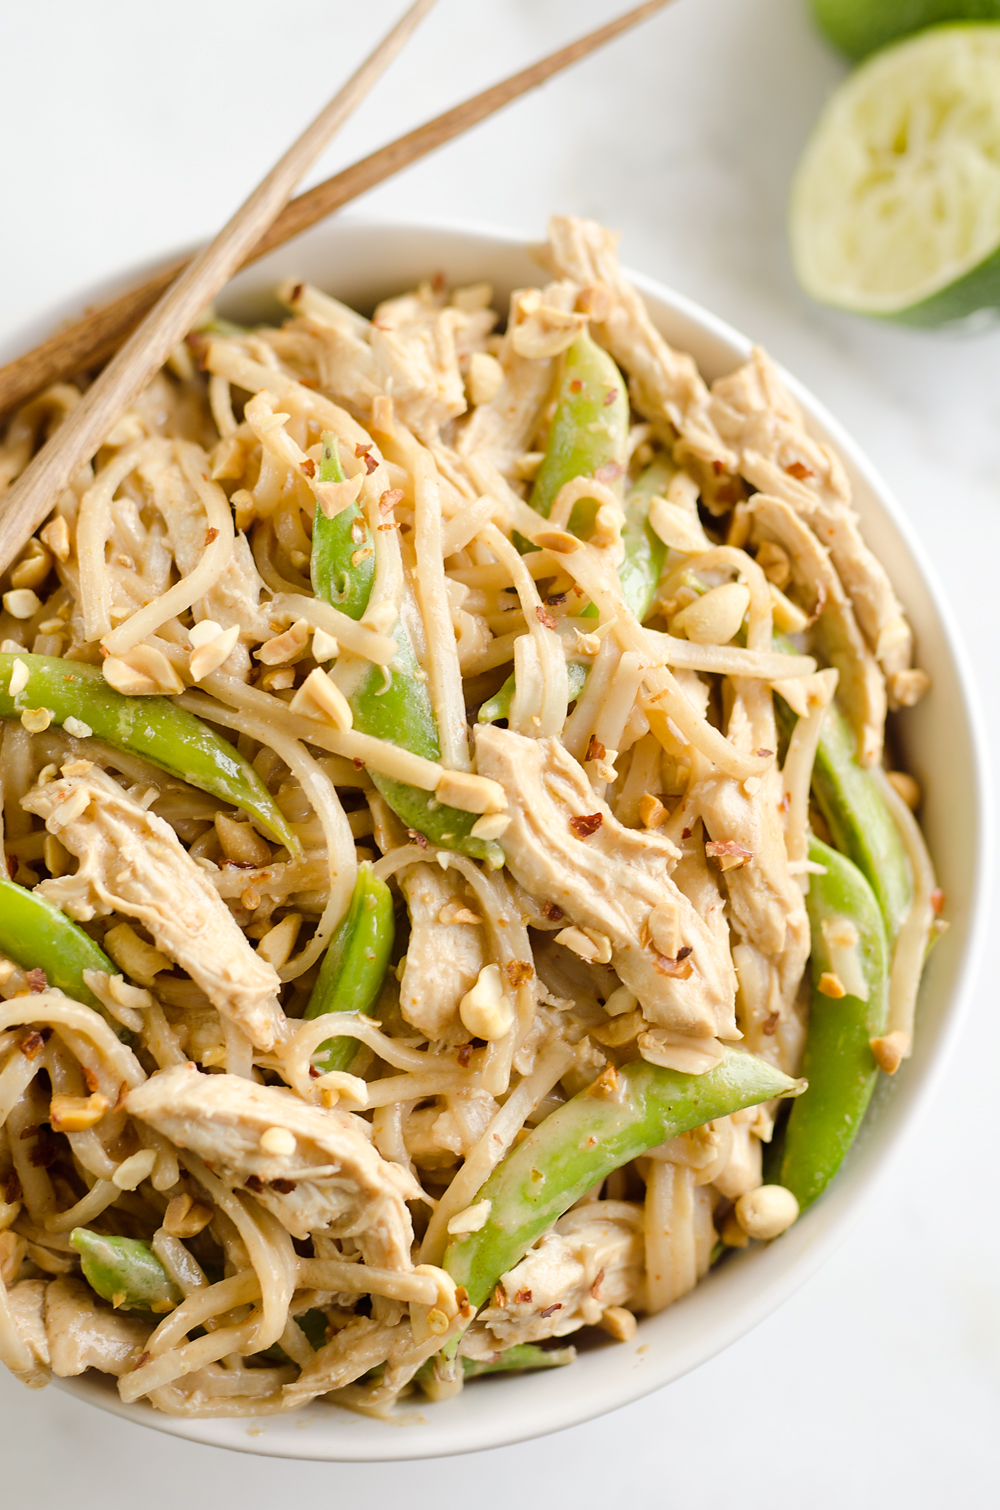 Pressure Cooker Thai Peanut Chicken Noodles